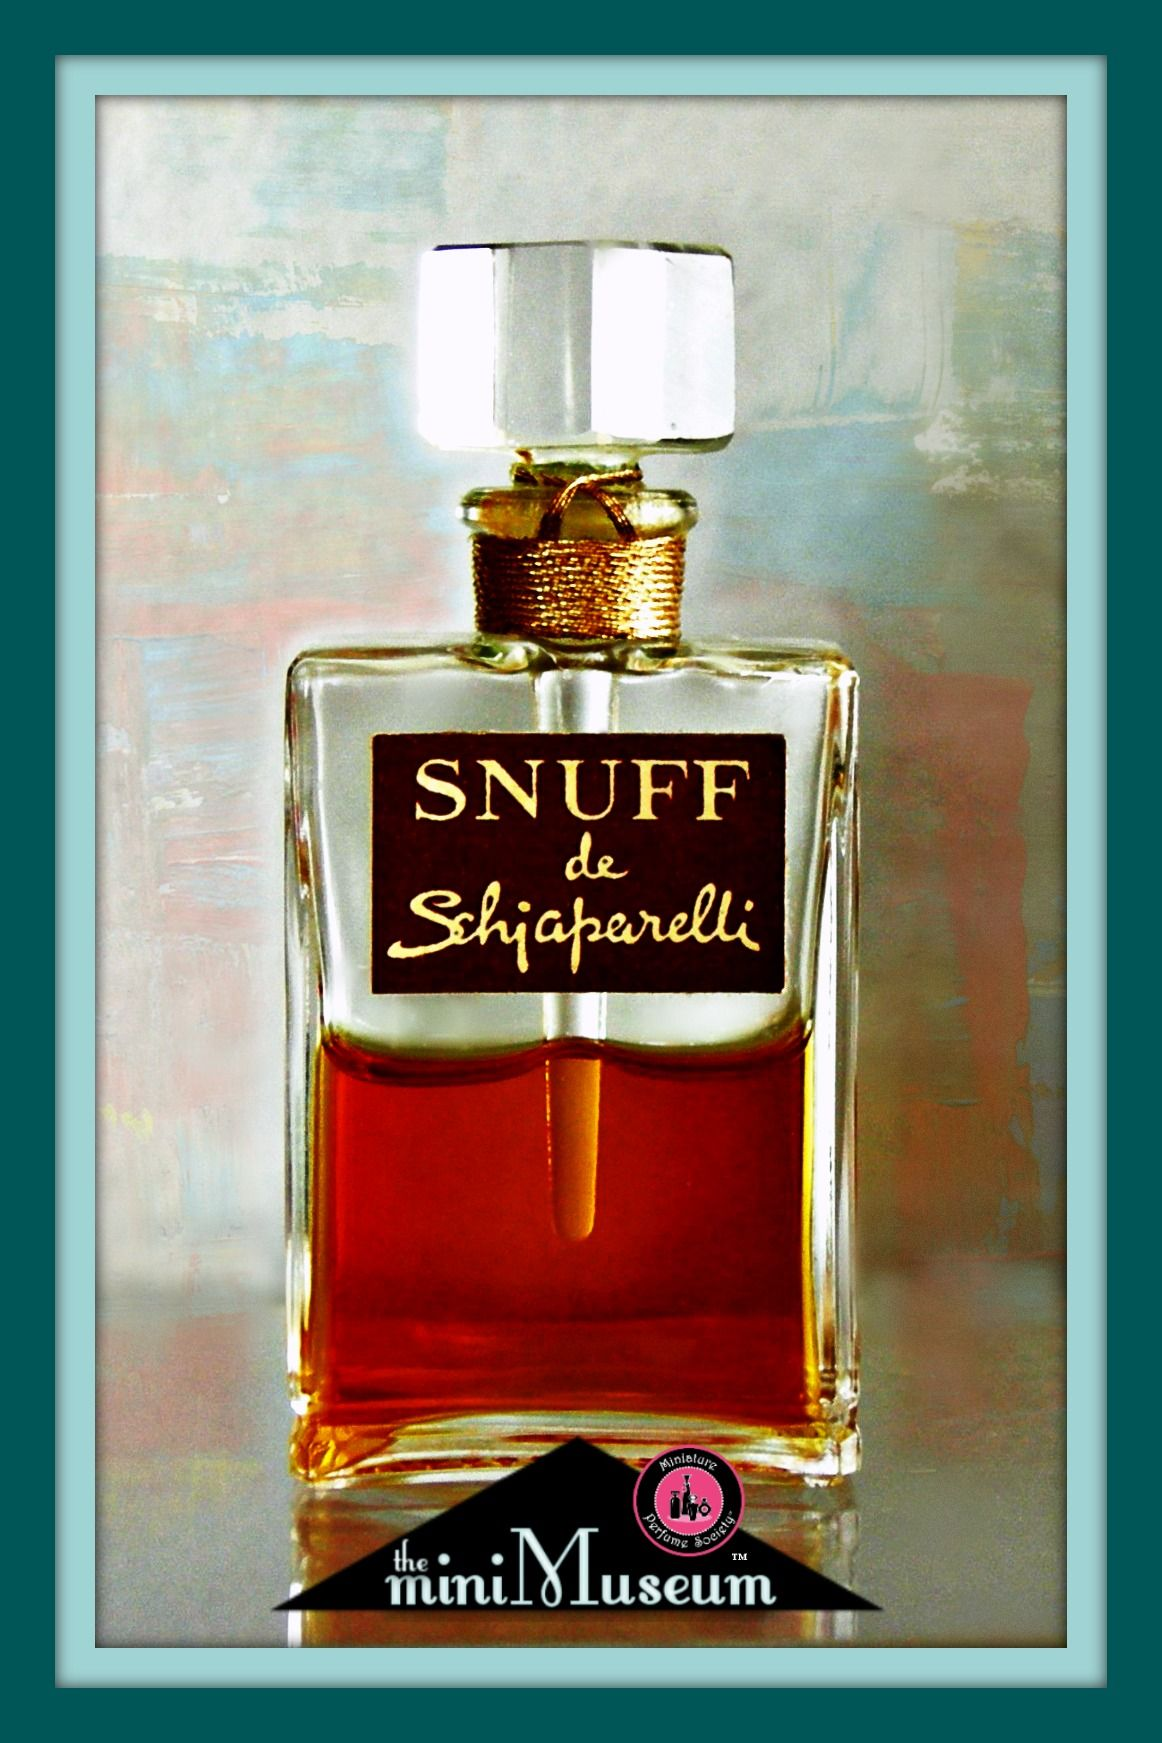 SNUFF de Schiaparelli miniature perfume bottle by Parfums Schiaparelli. C1949; 2.38 inches high. | The Mini Museum...telling the history of perfume one mini at a time.